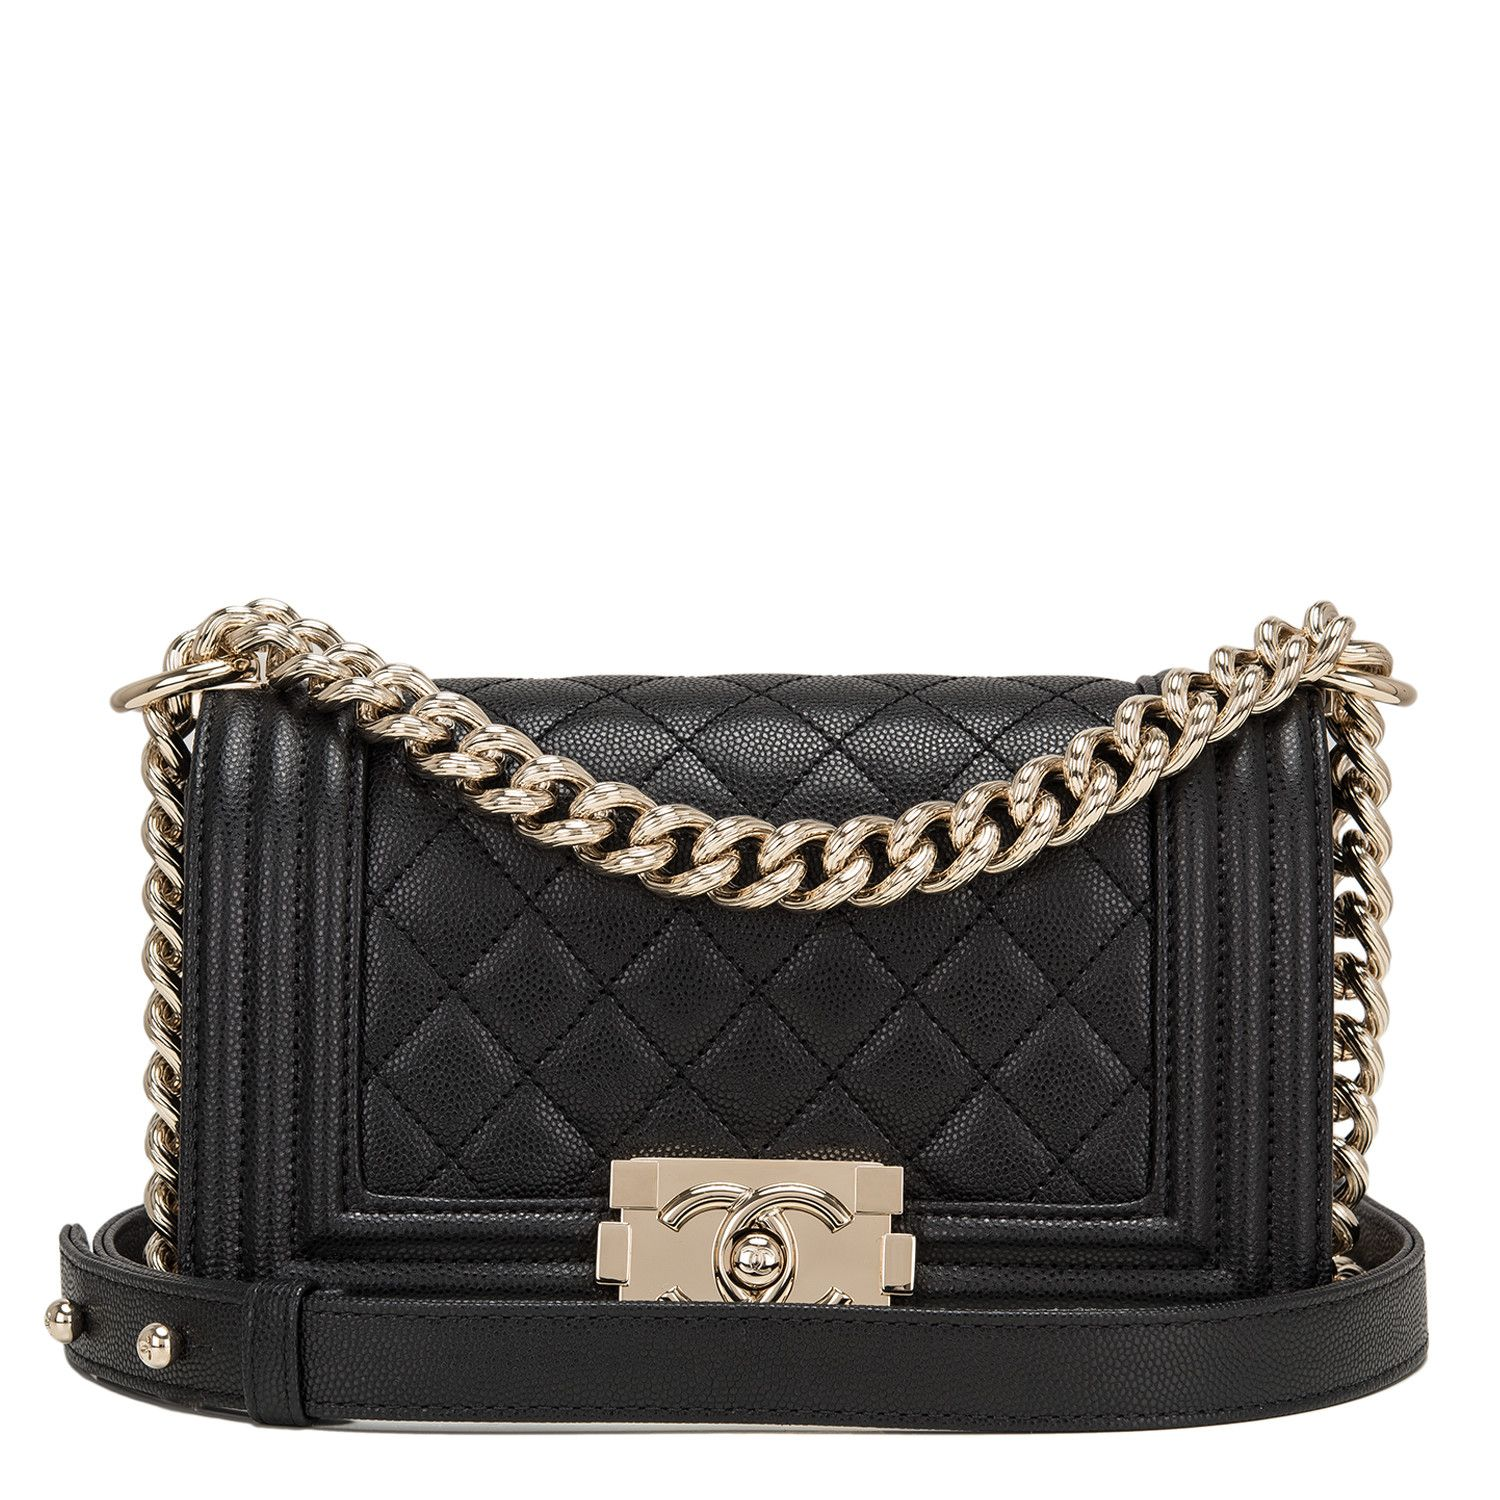 b1245c01b0e0 Chanel Black Quilted Caviar Small Boy #Bag | Style Envy | Chanel boy ...